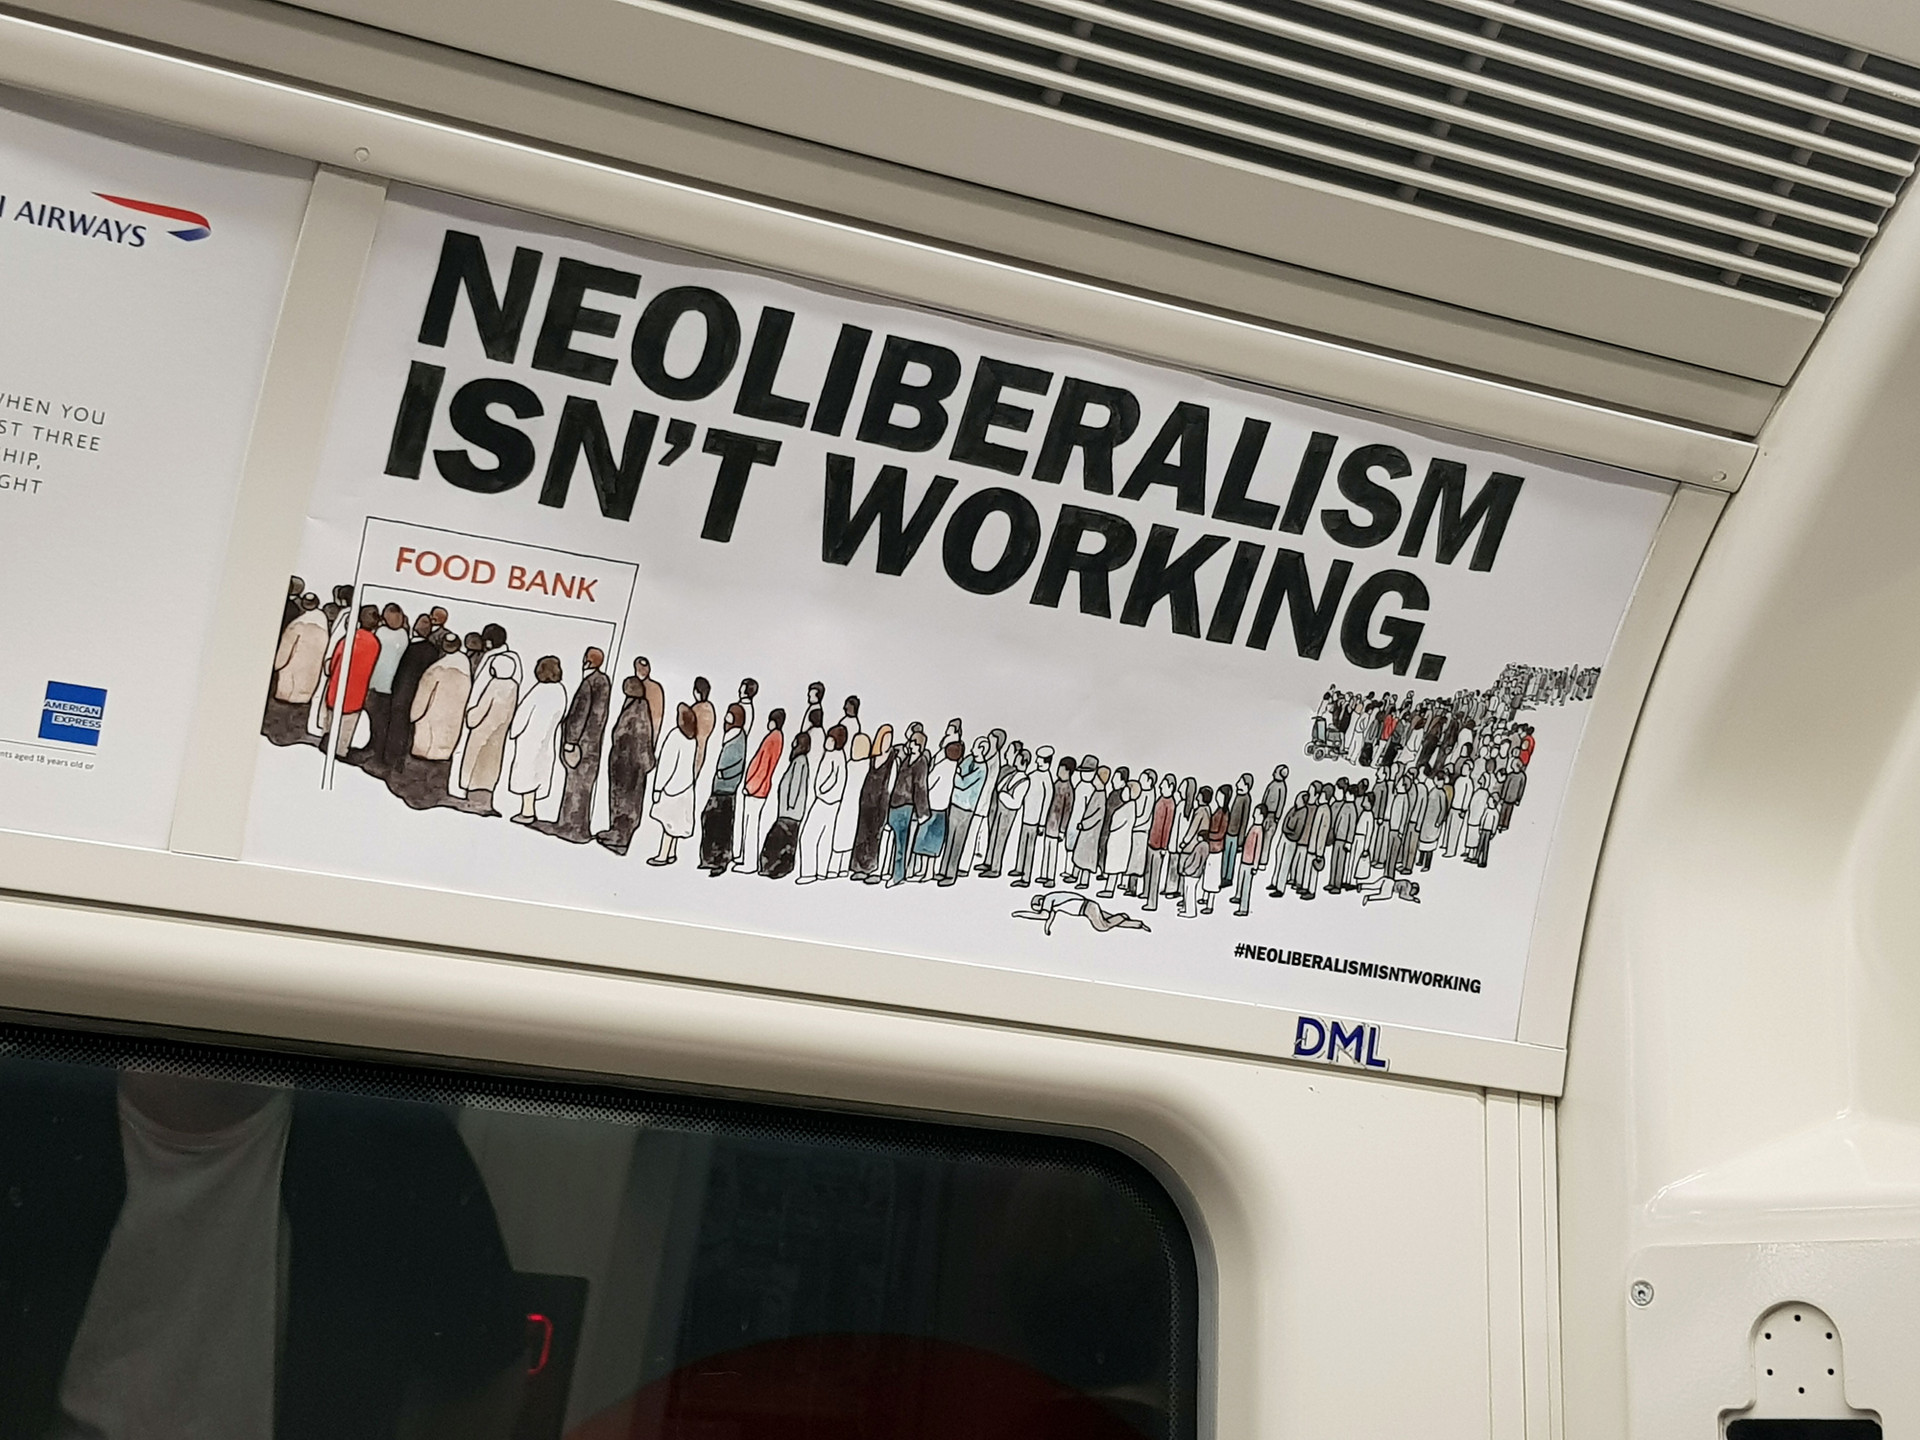 Neoliberalism Isn't Working